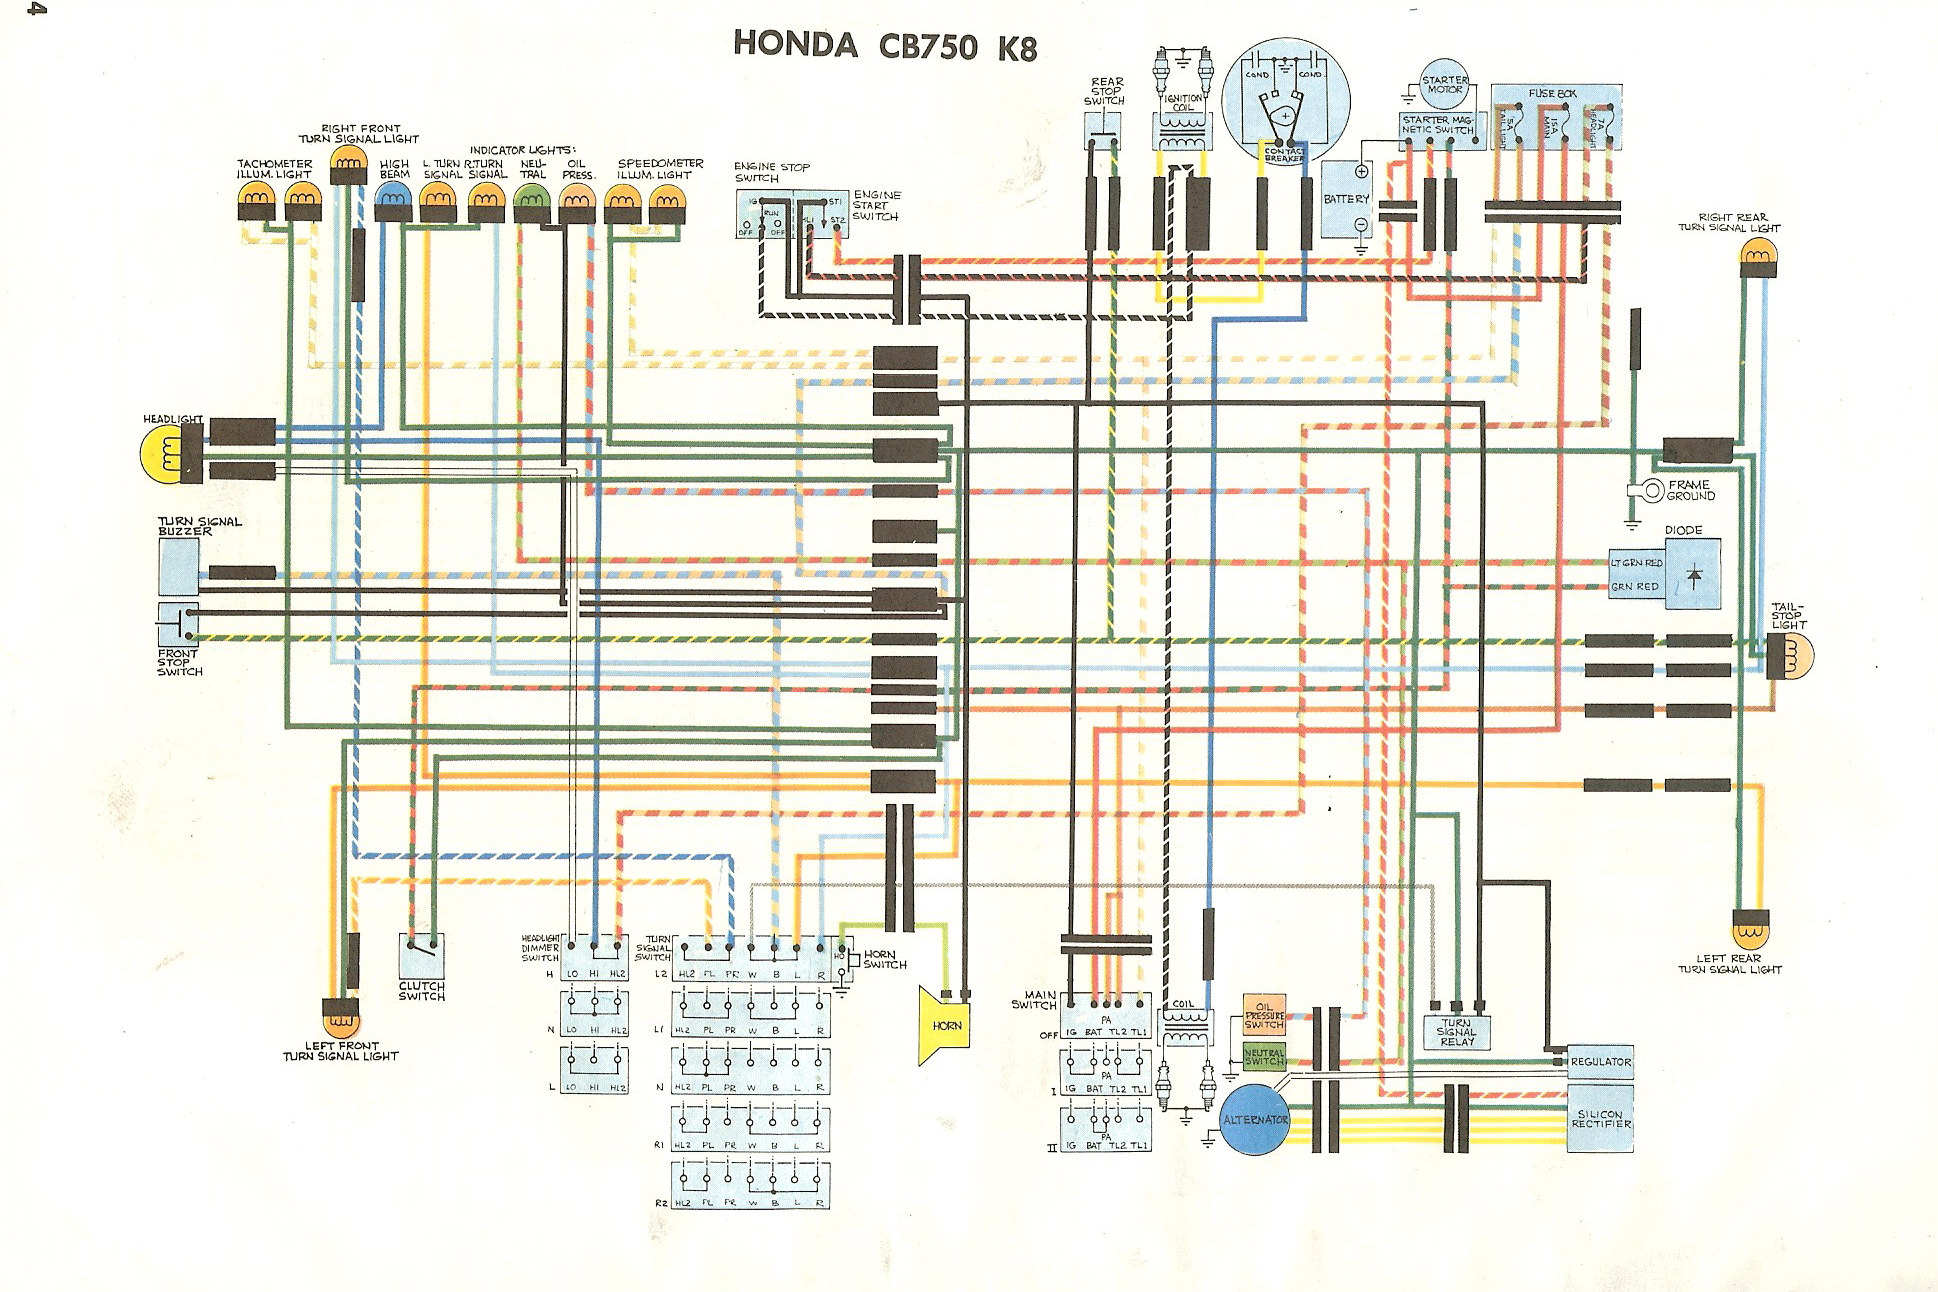 WD750K8 cb750k wiring diagram motorcycle ignition wiring diagram \u2022 wiring 1971 honda cb350 wiring diagram at soozxer.org